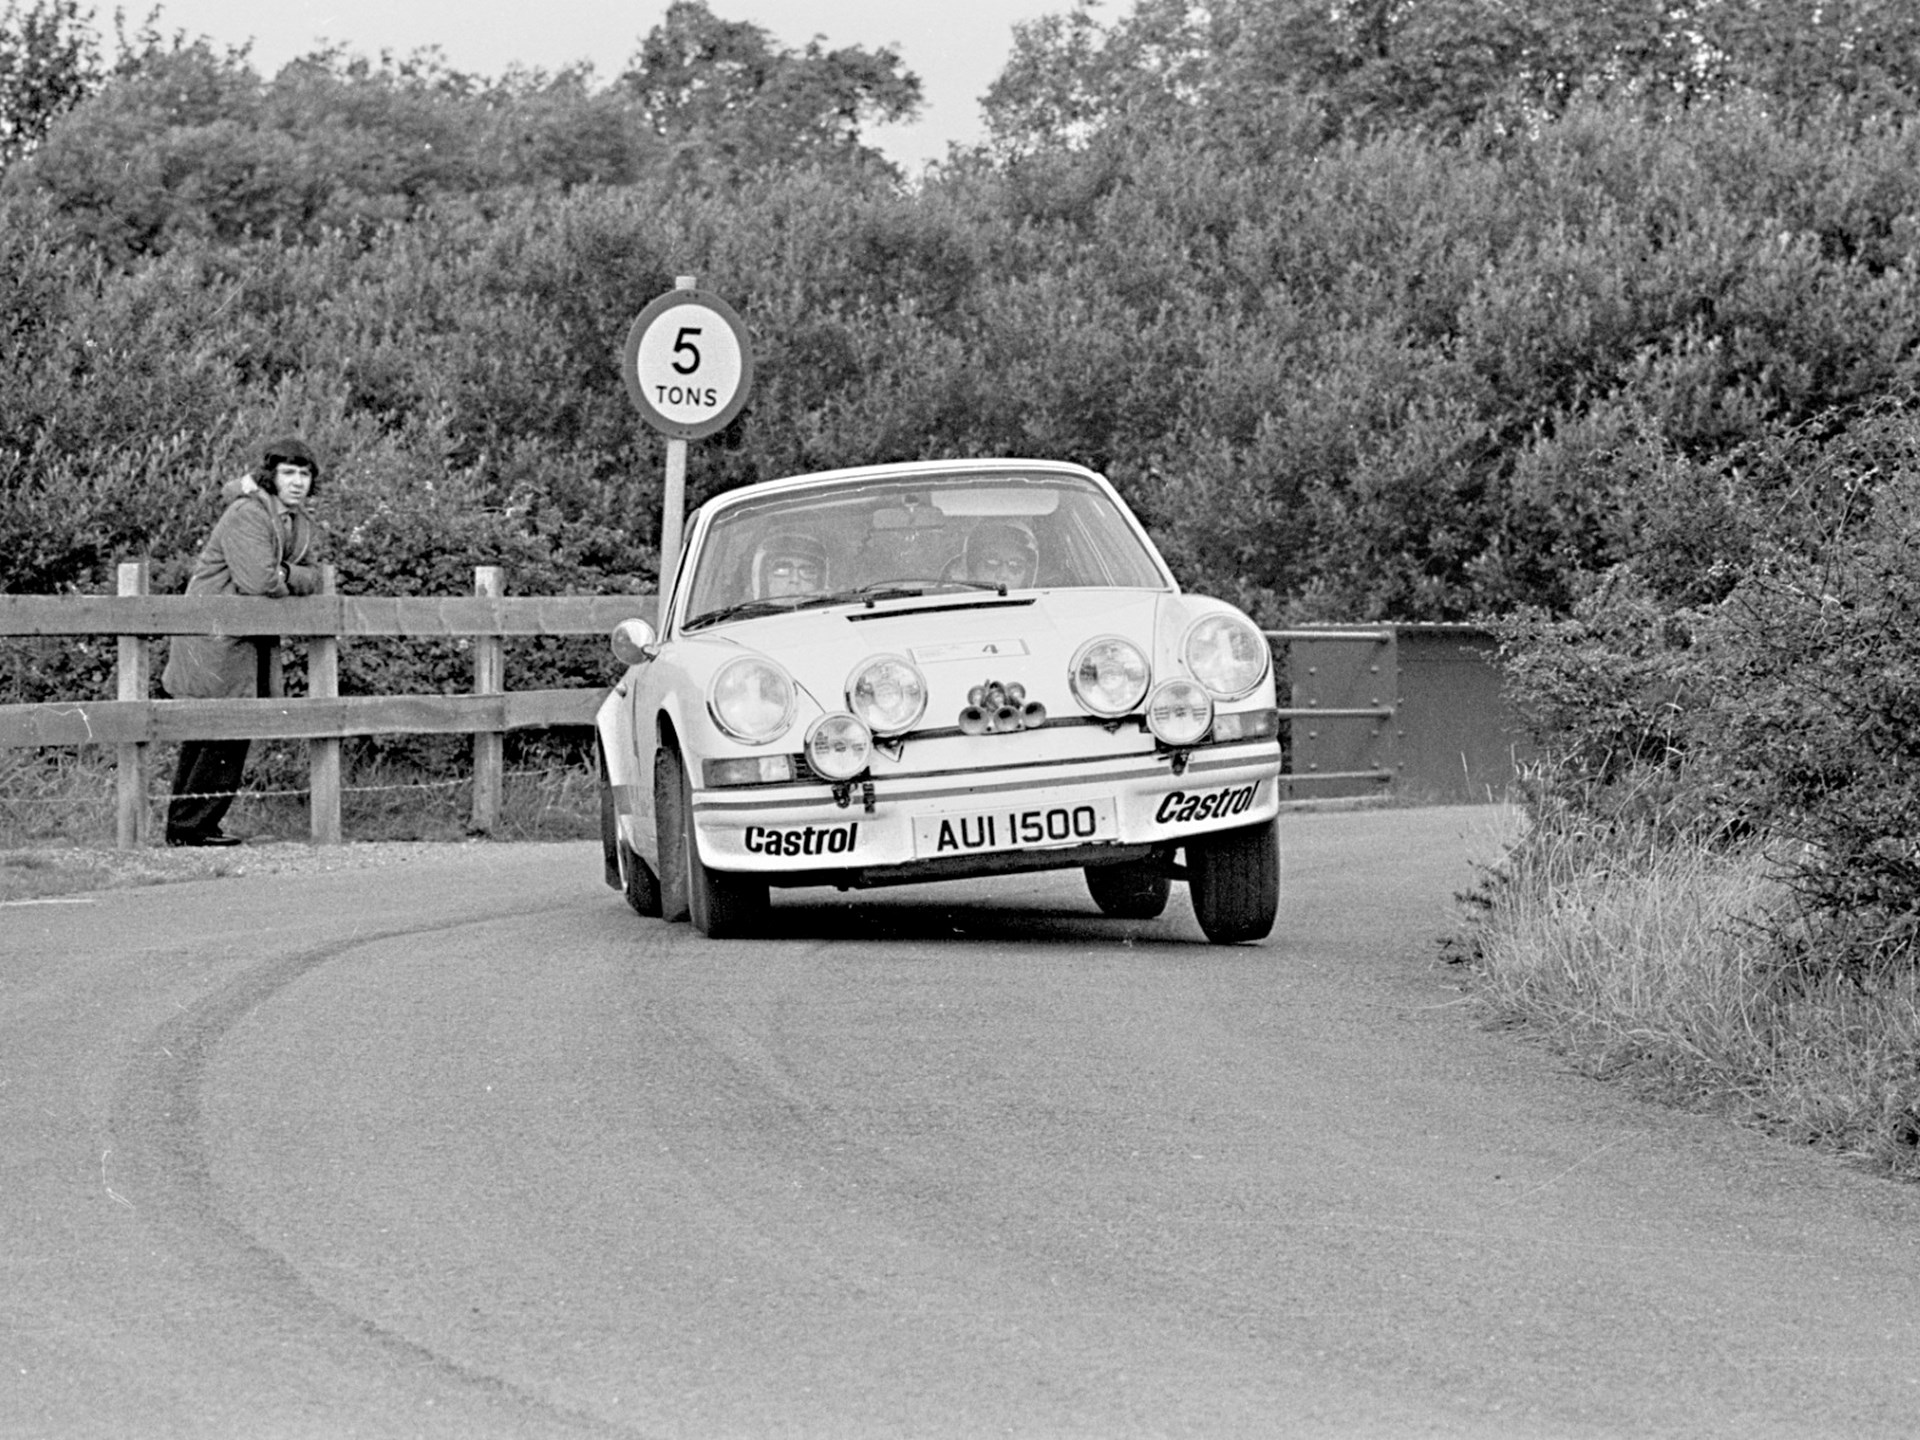 AUI 1500 at the 1974 Castrol Manx International Rally.